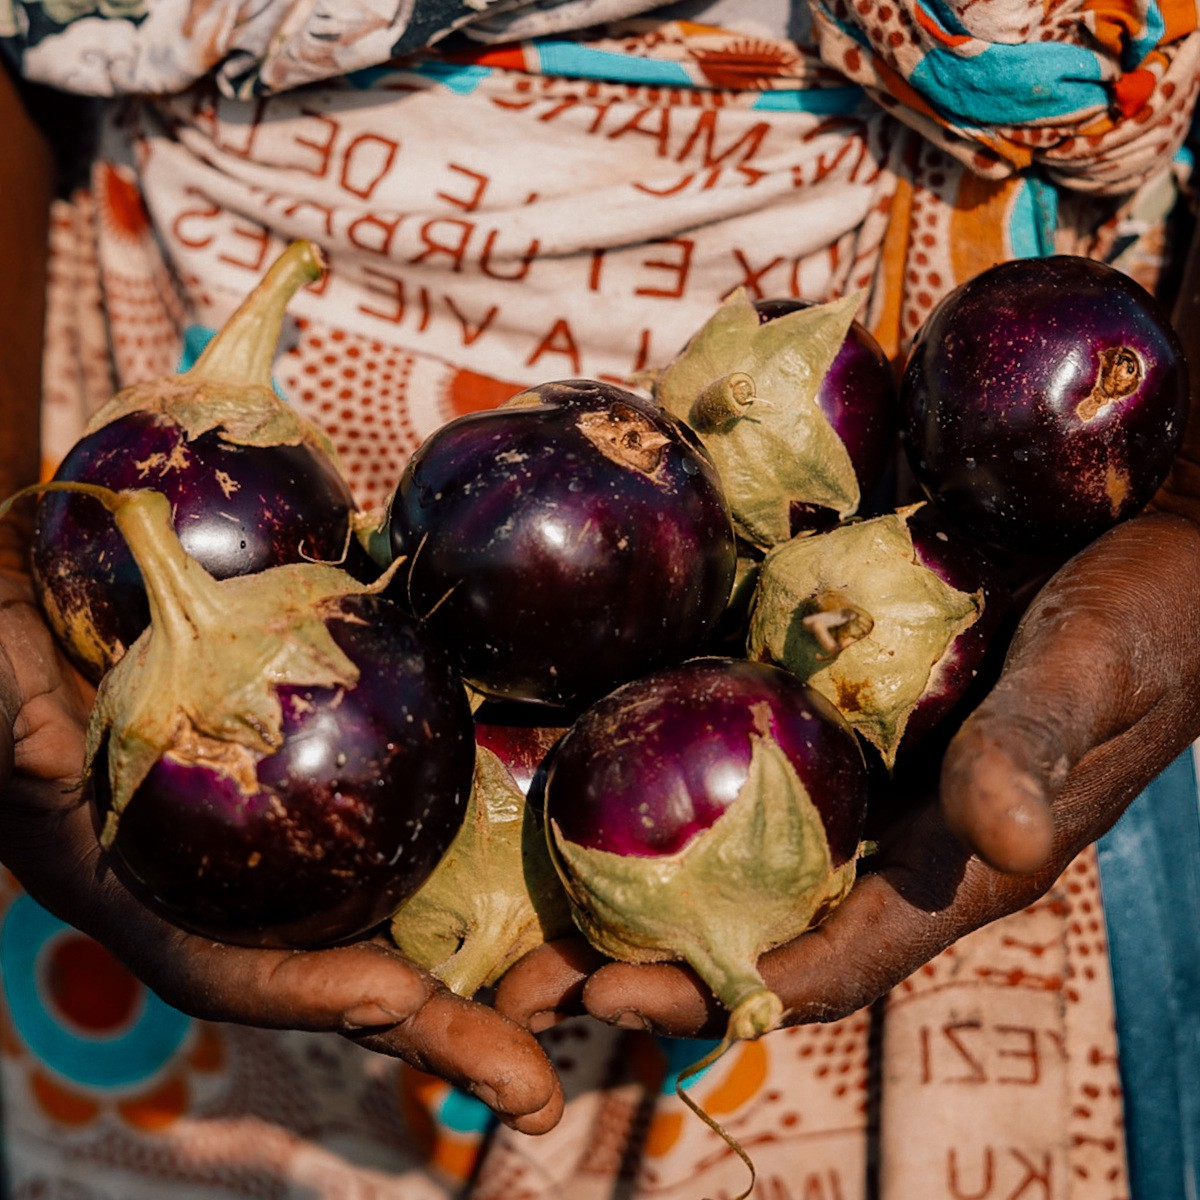 Aubergines are harvested and sold at the nearby market.